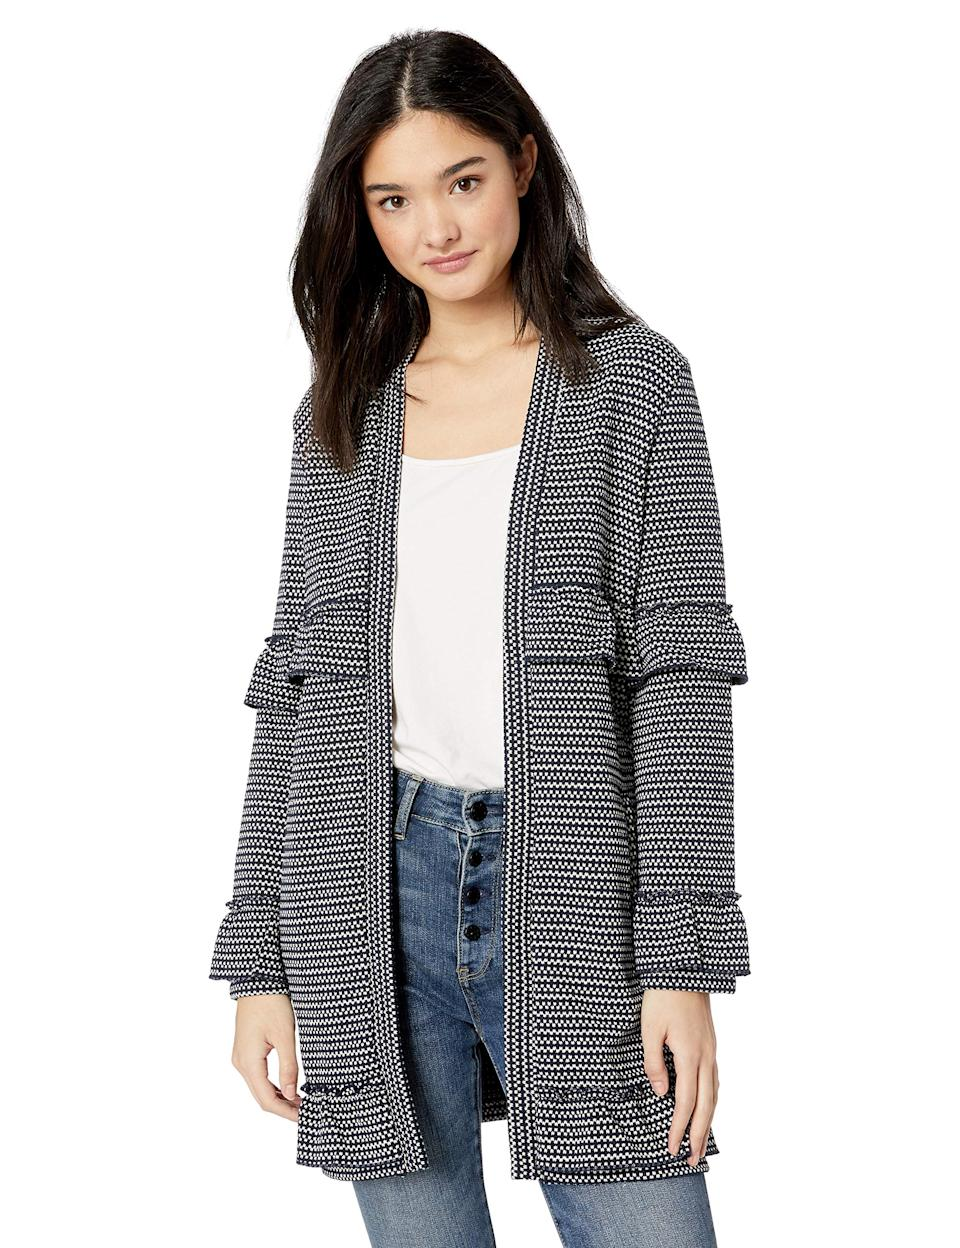 "<br><br><strong>Jack</strong> Jack by BB Dakota Womens Ready to Ruffle Knit Coat, deep navy medium, $, available at <a href=""https://amzn.to/2pyHPs6"" rel=""nofollow noopener"" target=""_blank"" data-ylk=""slk:Amazon"" class=""link rapid-noclick-resp"">Amazon</a>"